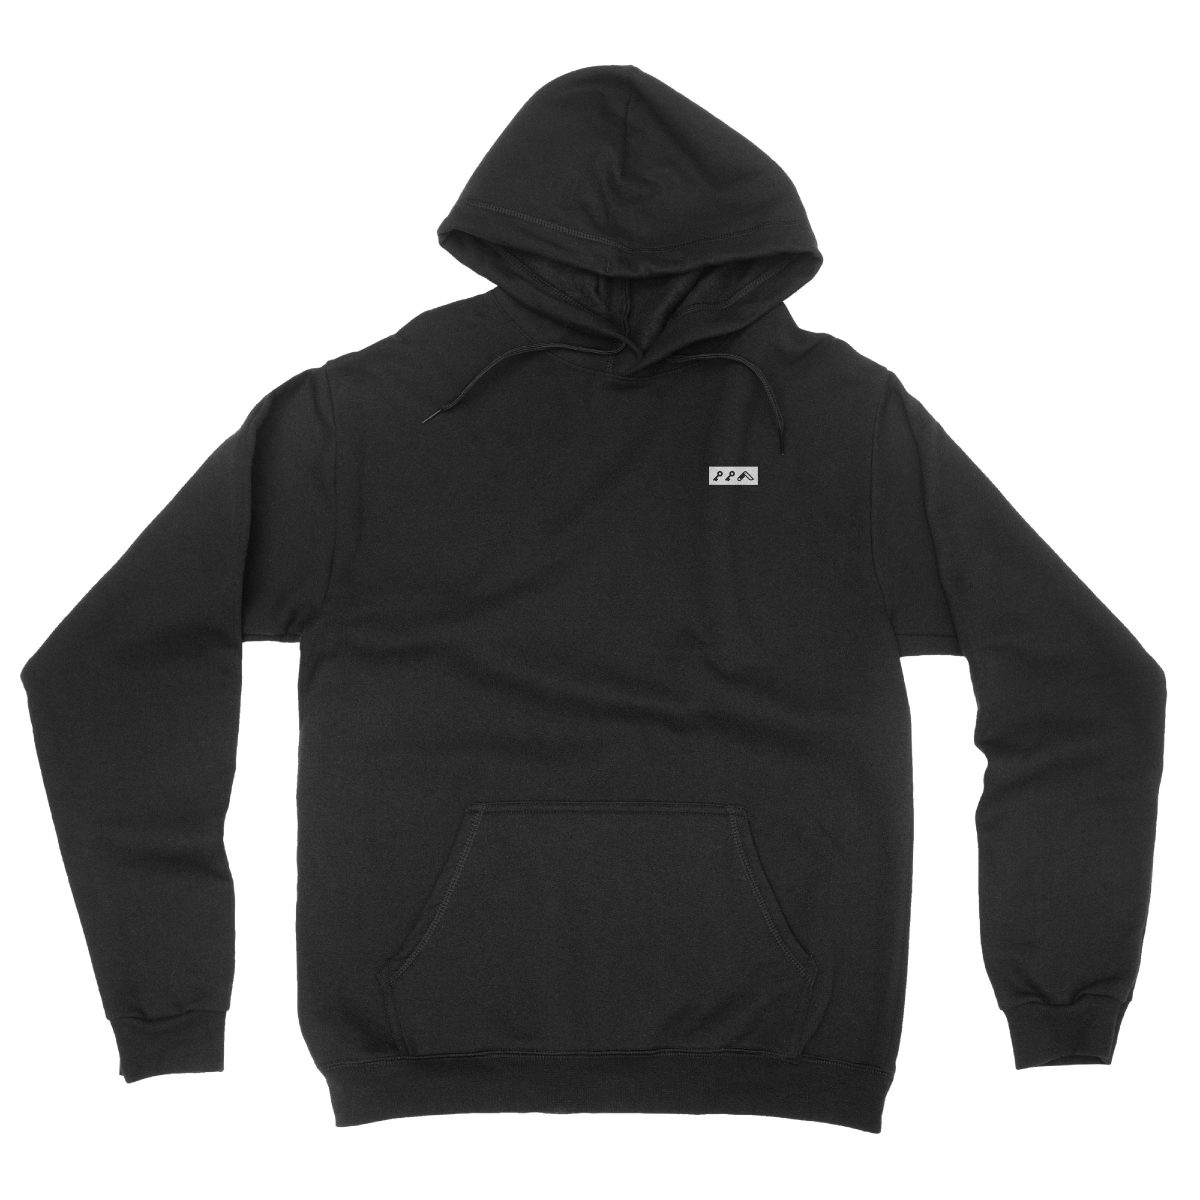 KIKICUTT white icon on an black classic and comfortable hoodie